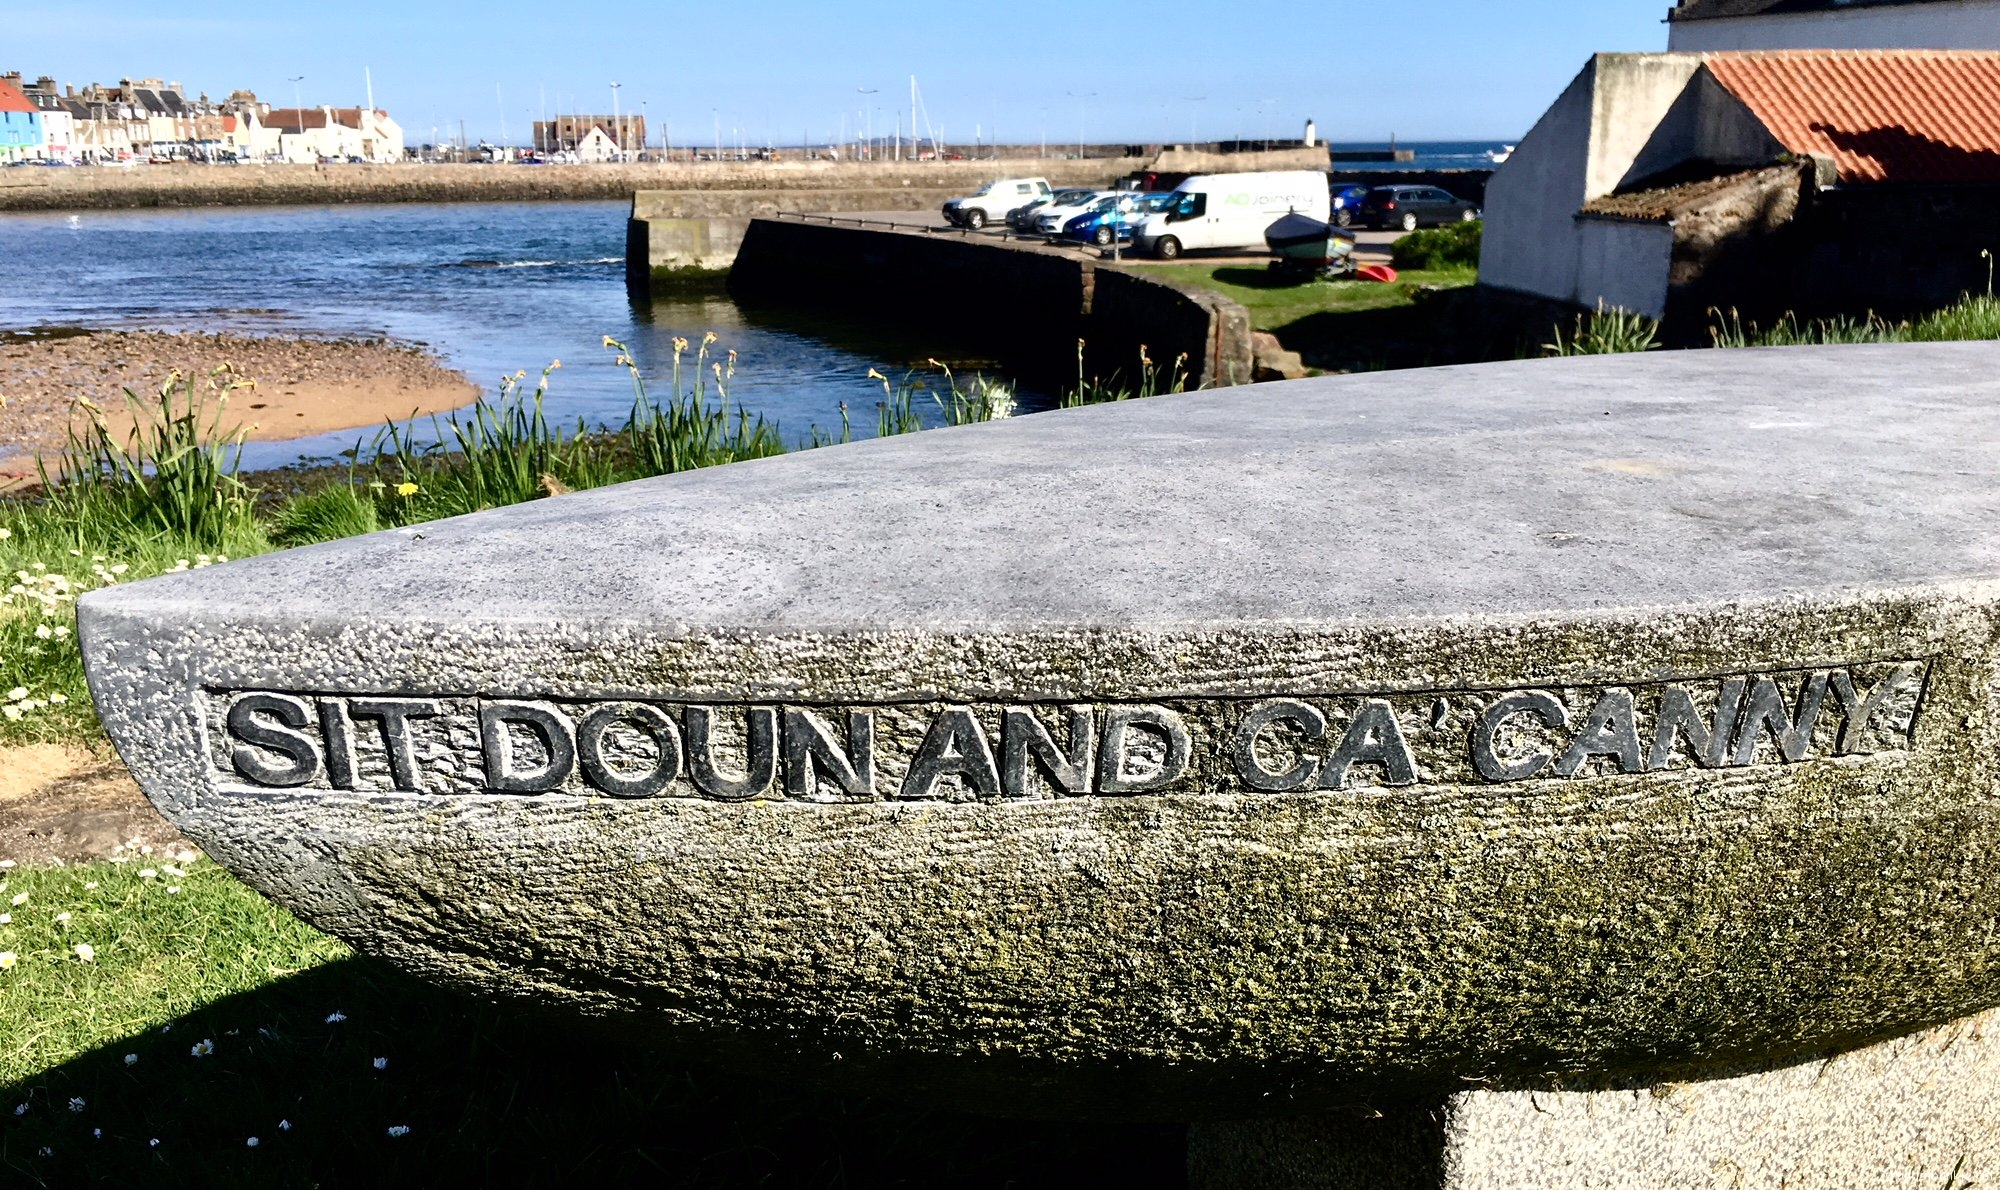 rt-slaletter-hand-carved-bench-anstruther-graveyard-walkersbenches-sit-doun-and-cacanny-always-good-advice-https-t-co-4fzmrevy9l